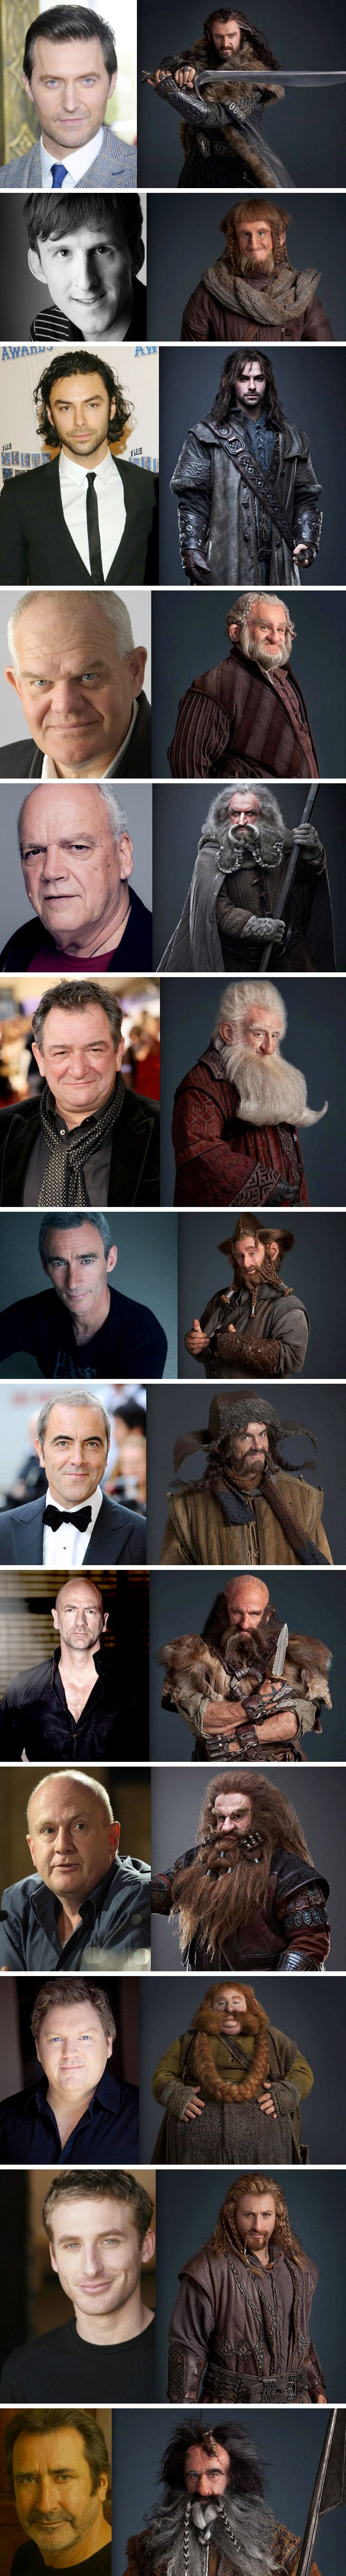 The Hobbit dwarves, pre and post make-up. I always knew there was a TON of makeup, but still! It's so weird seeing them like this! Fili and Kili are still the only hot ones, lol ;)